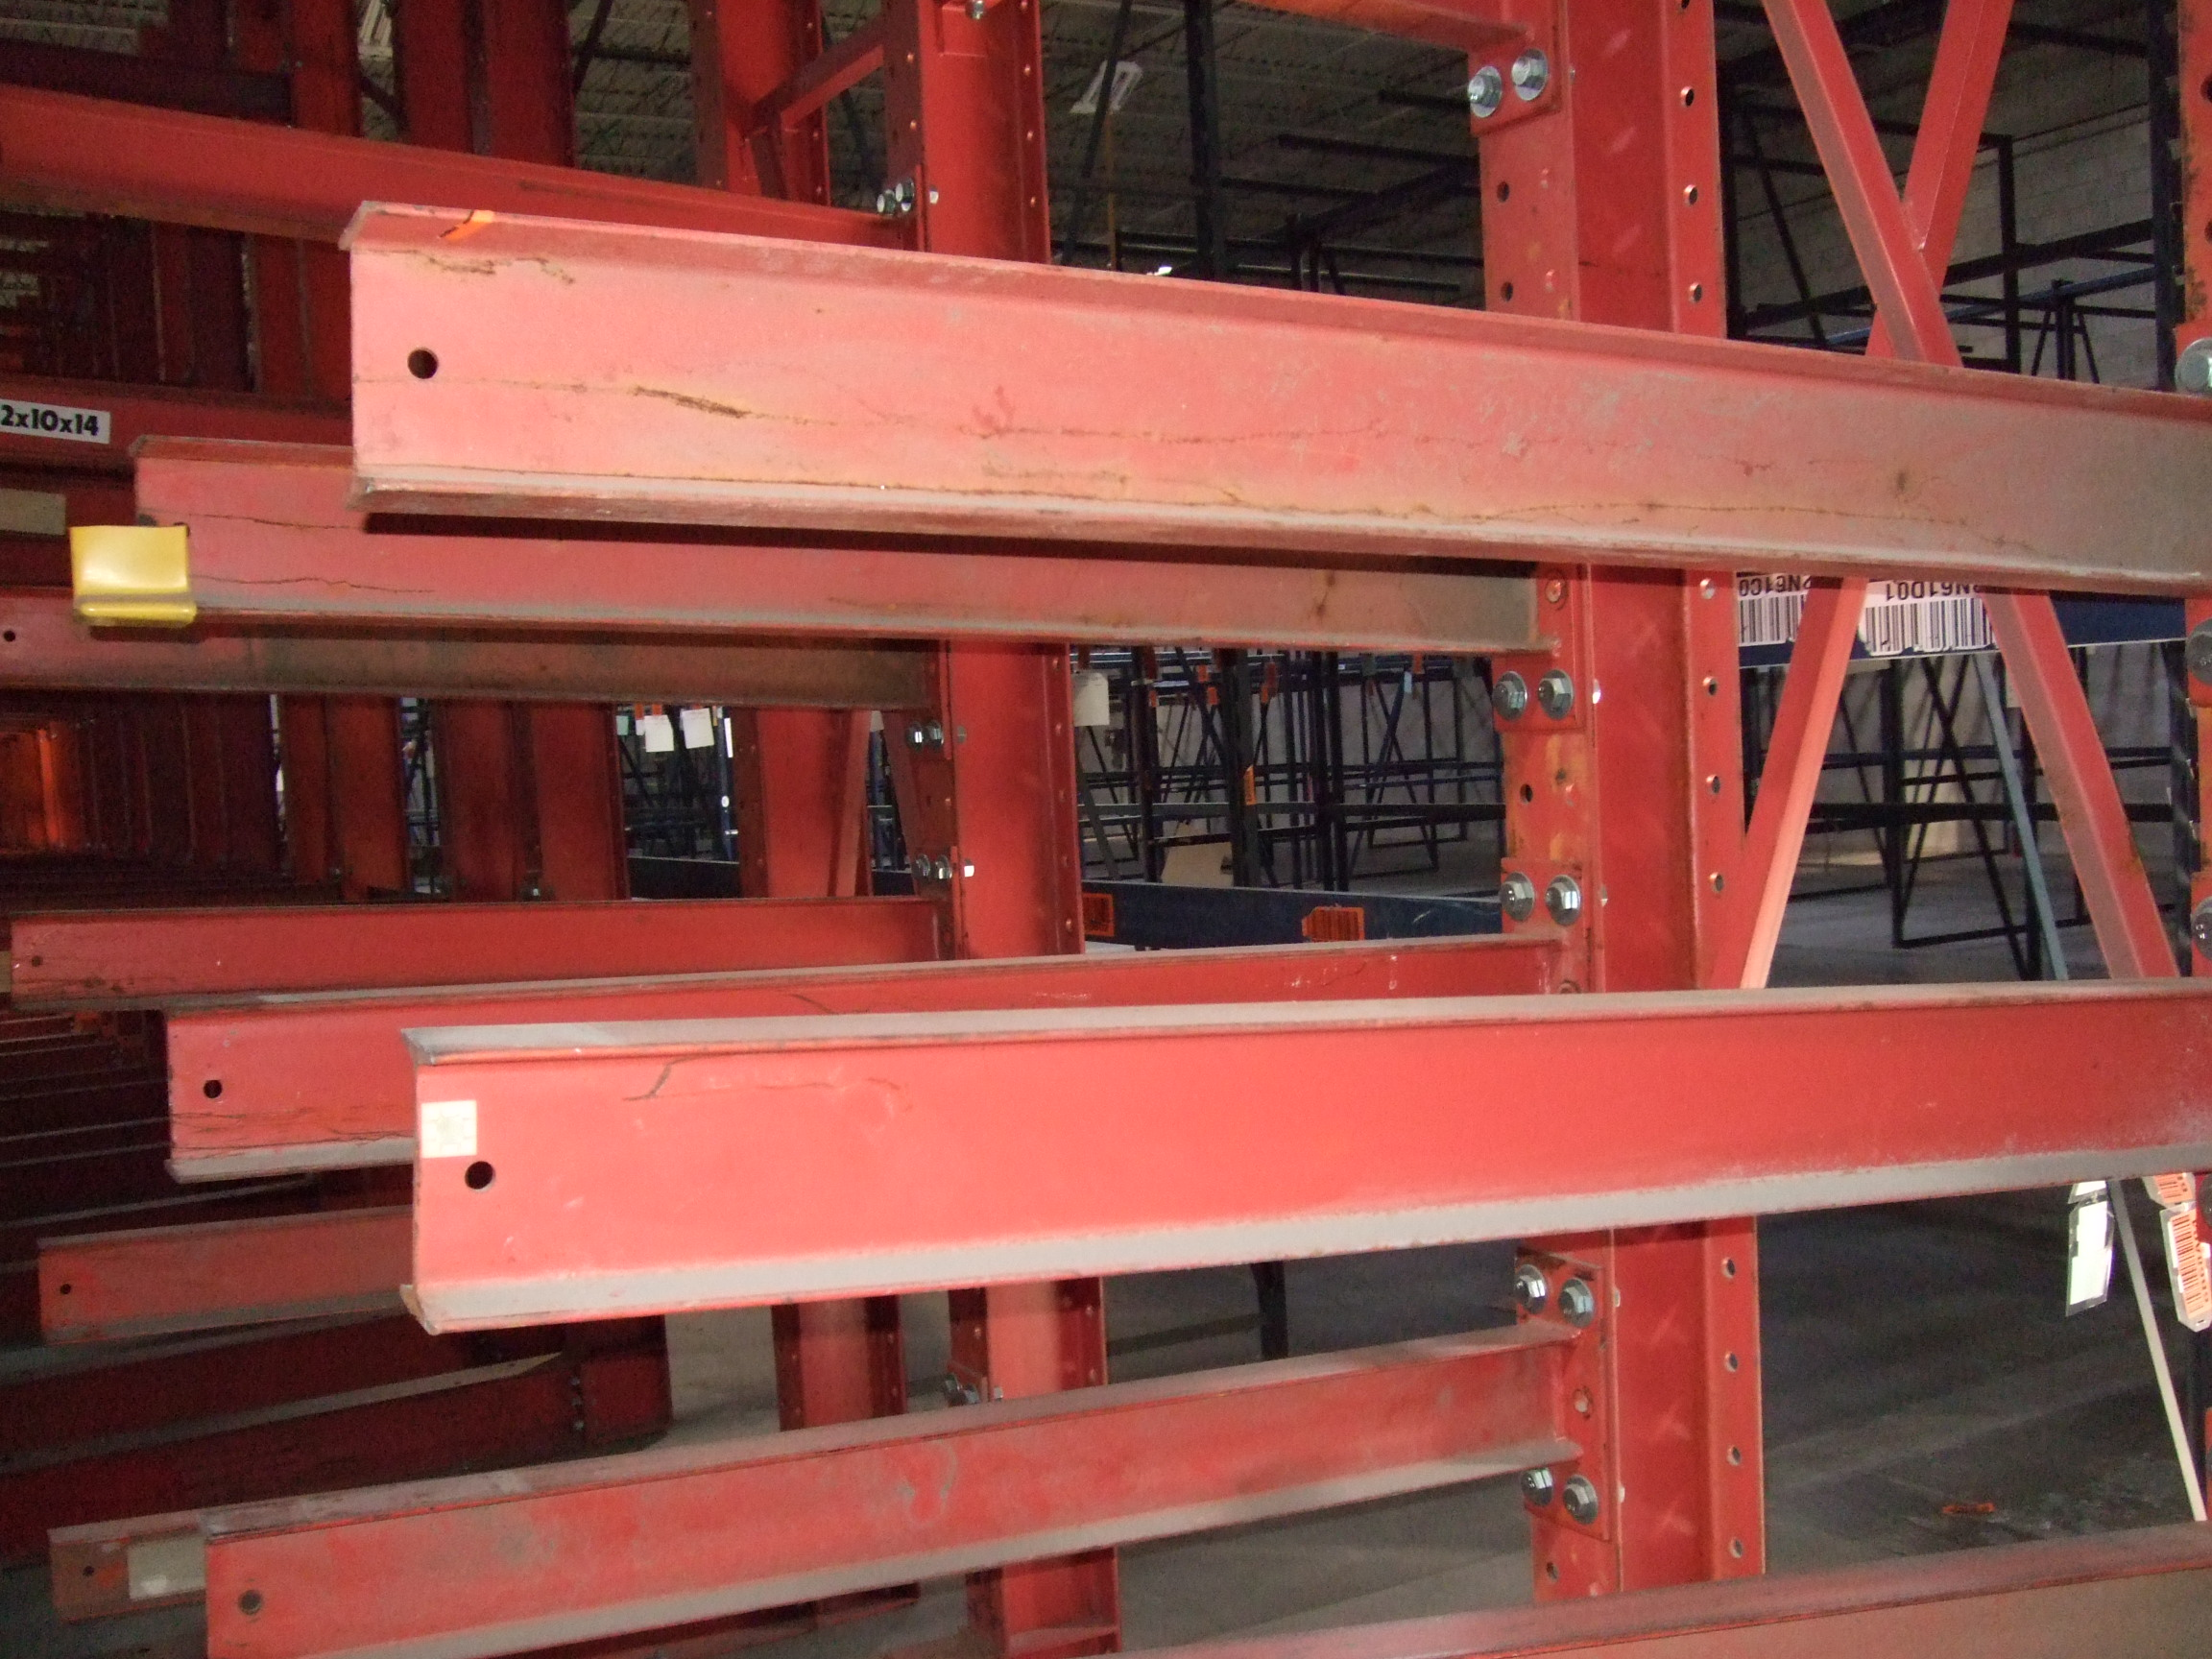 photo california international rack shelving llc warehouselving of size warehouse storage pallet cantilever phenomenal systems ideas solutions racks full rolling